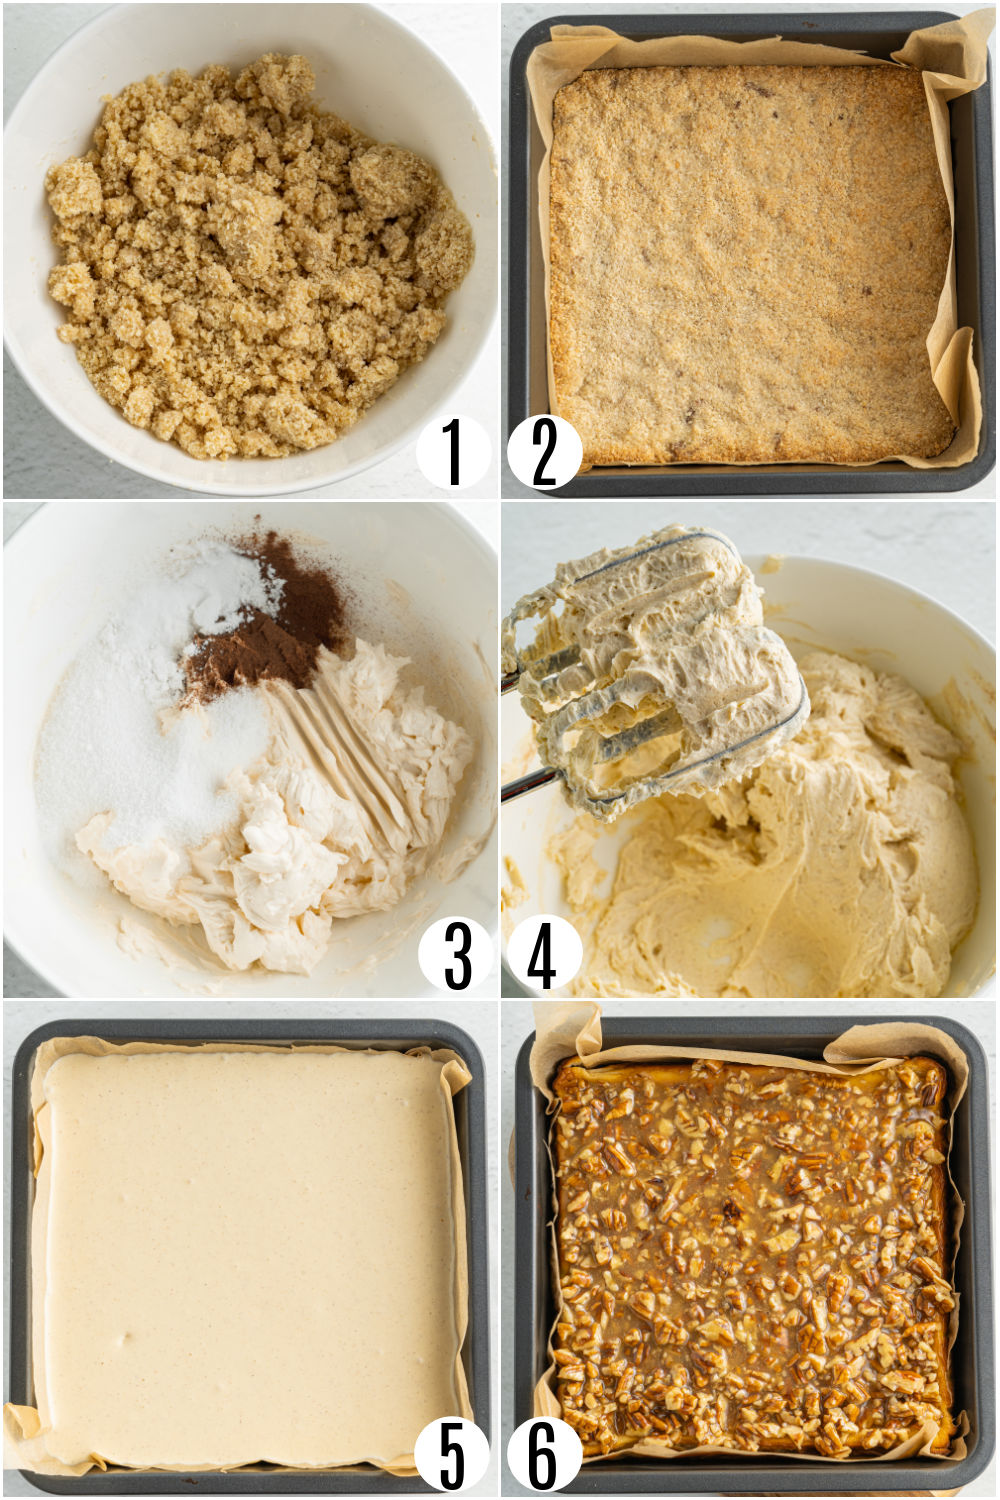 Step by step photos showing how to make pecan cheesecake bars.